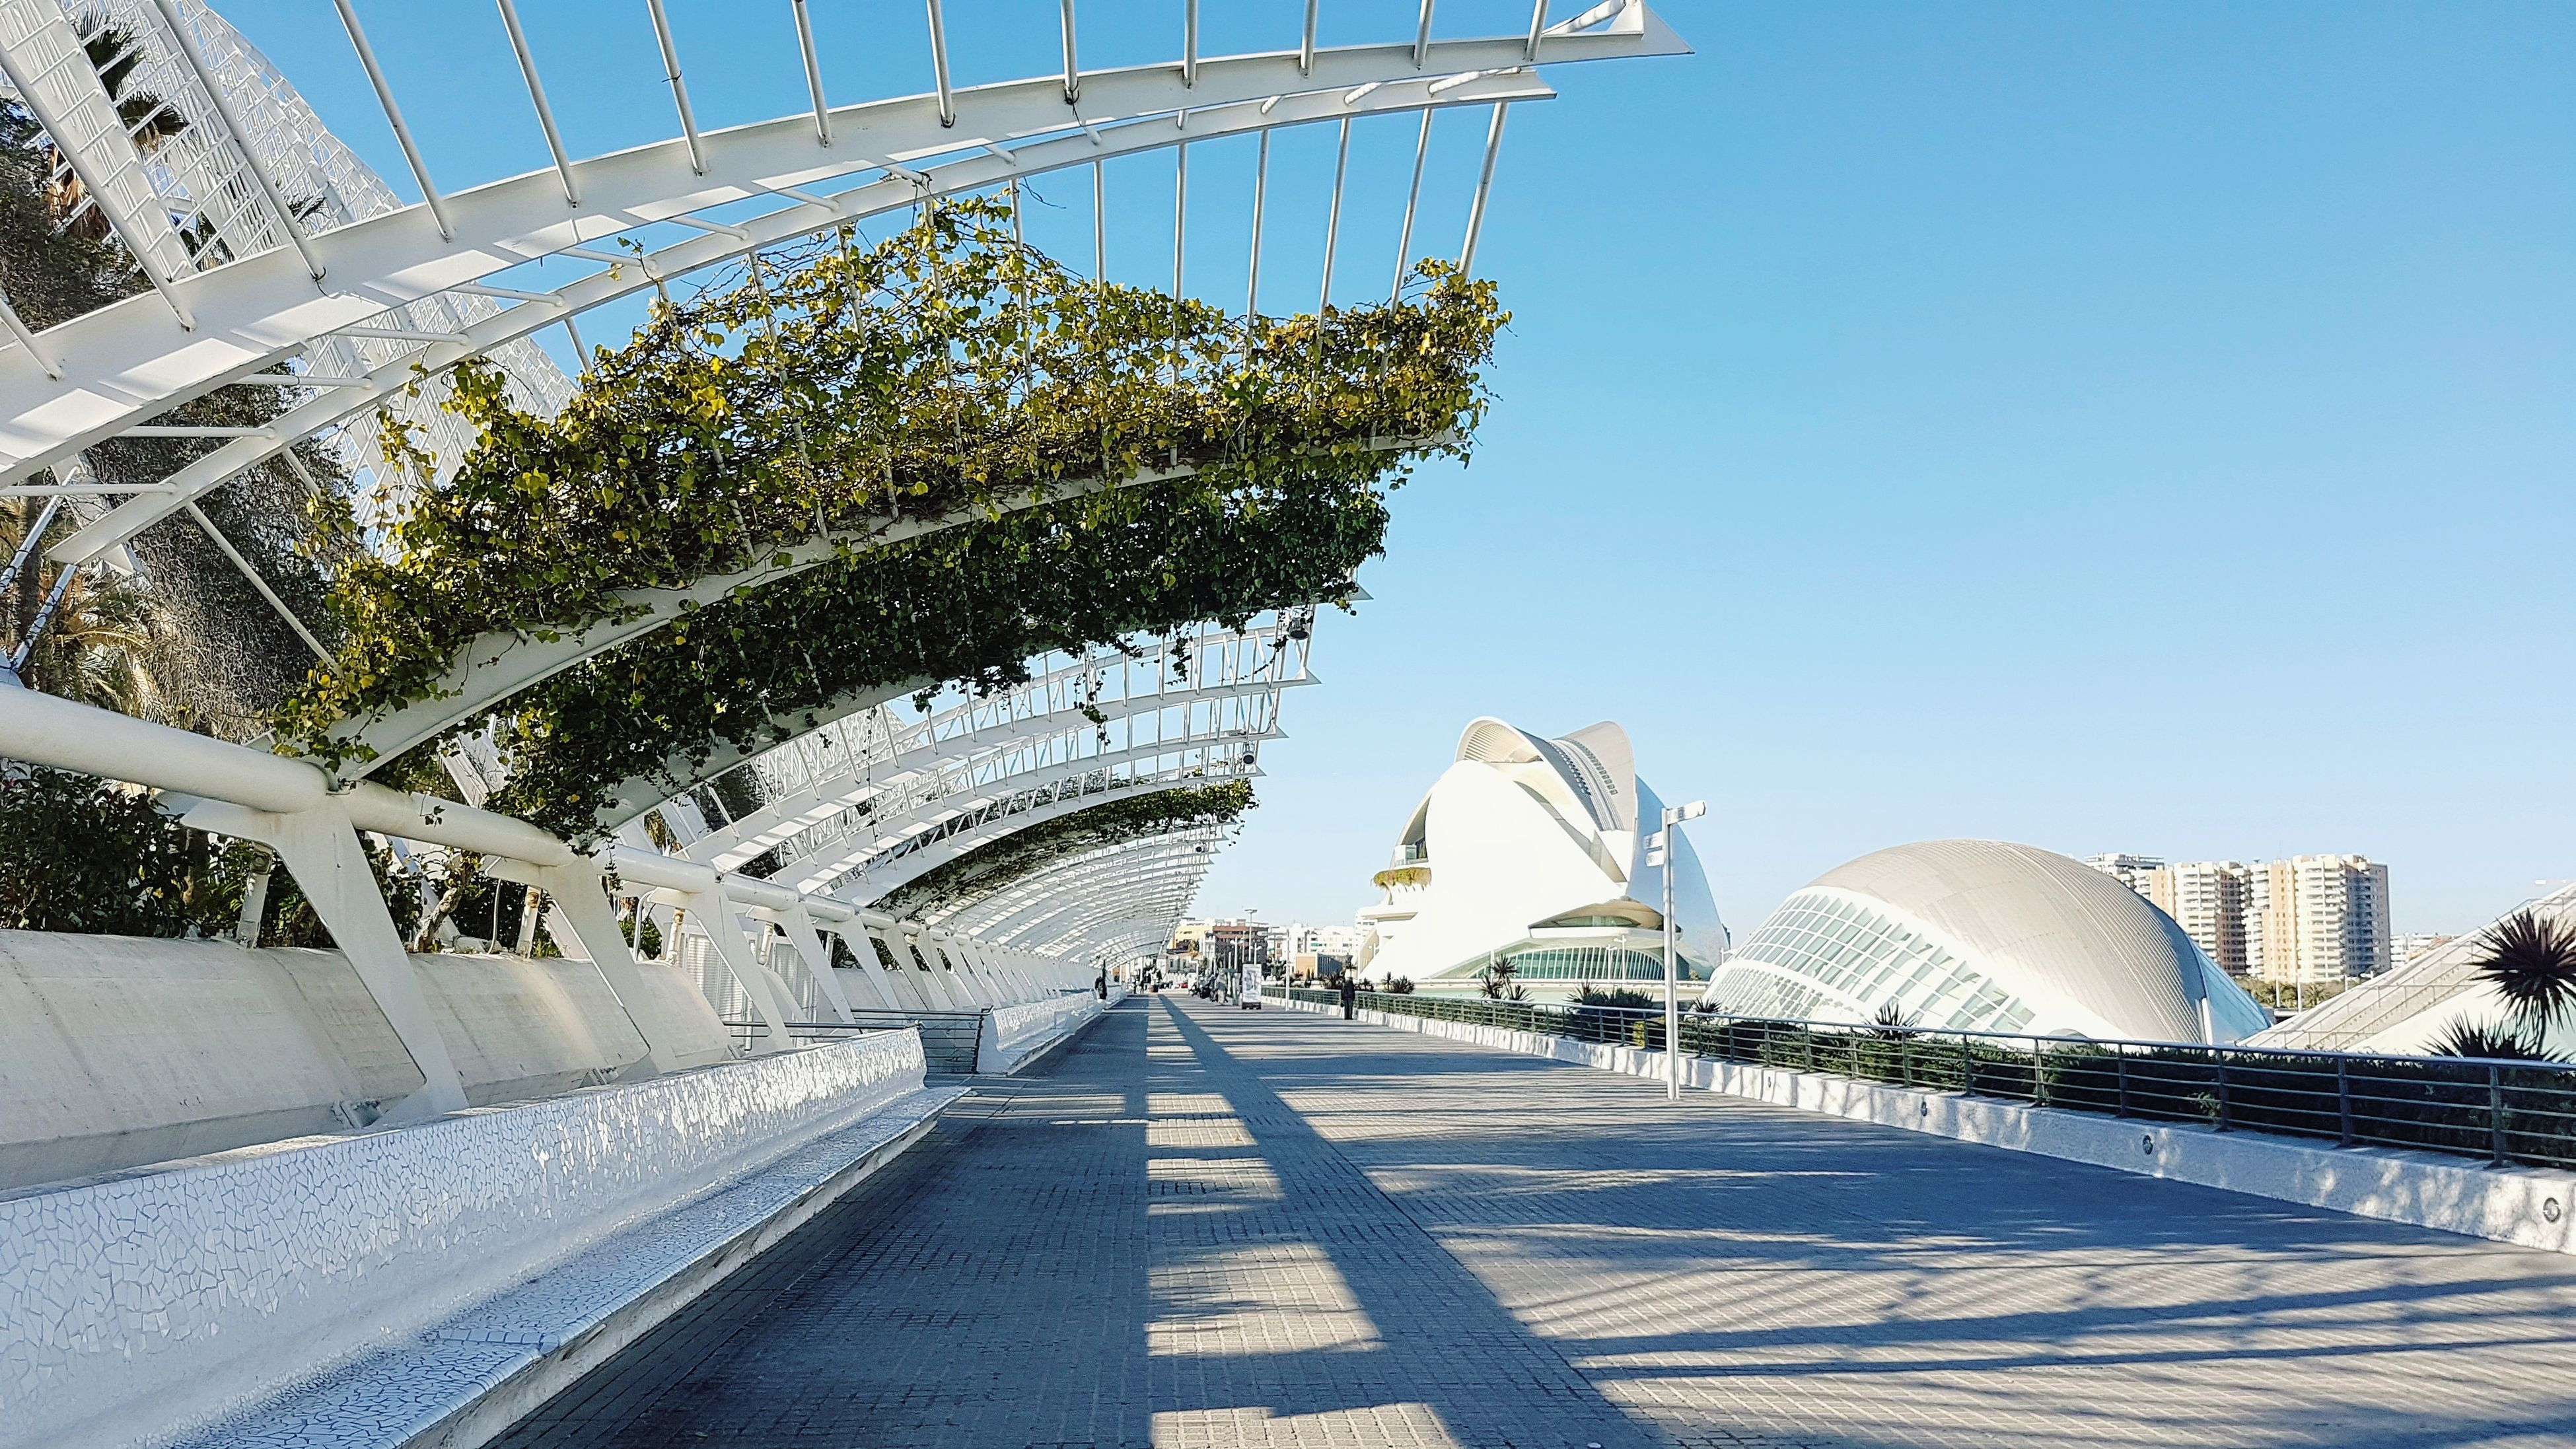 architecture, built structure, travel destinations, building exterior, modern, tourism, day, travel, outdoors, clear sky, arts culture and entertainment, city, vacations, tree, no people, sky